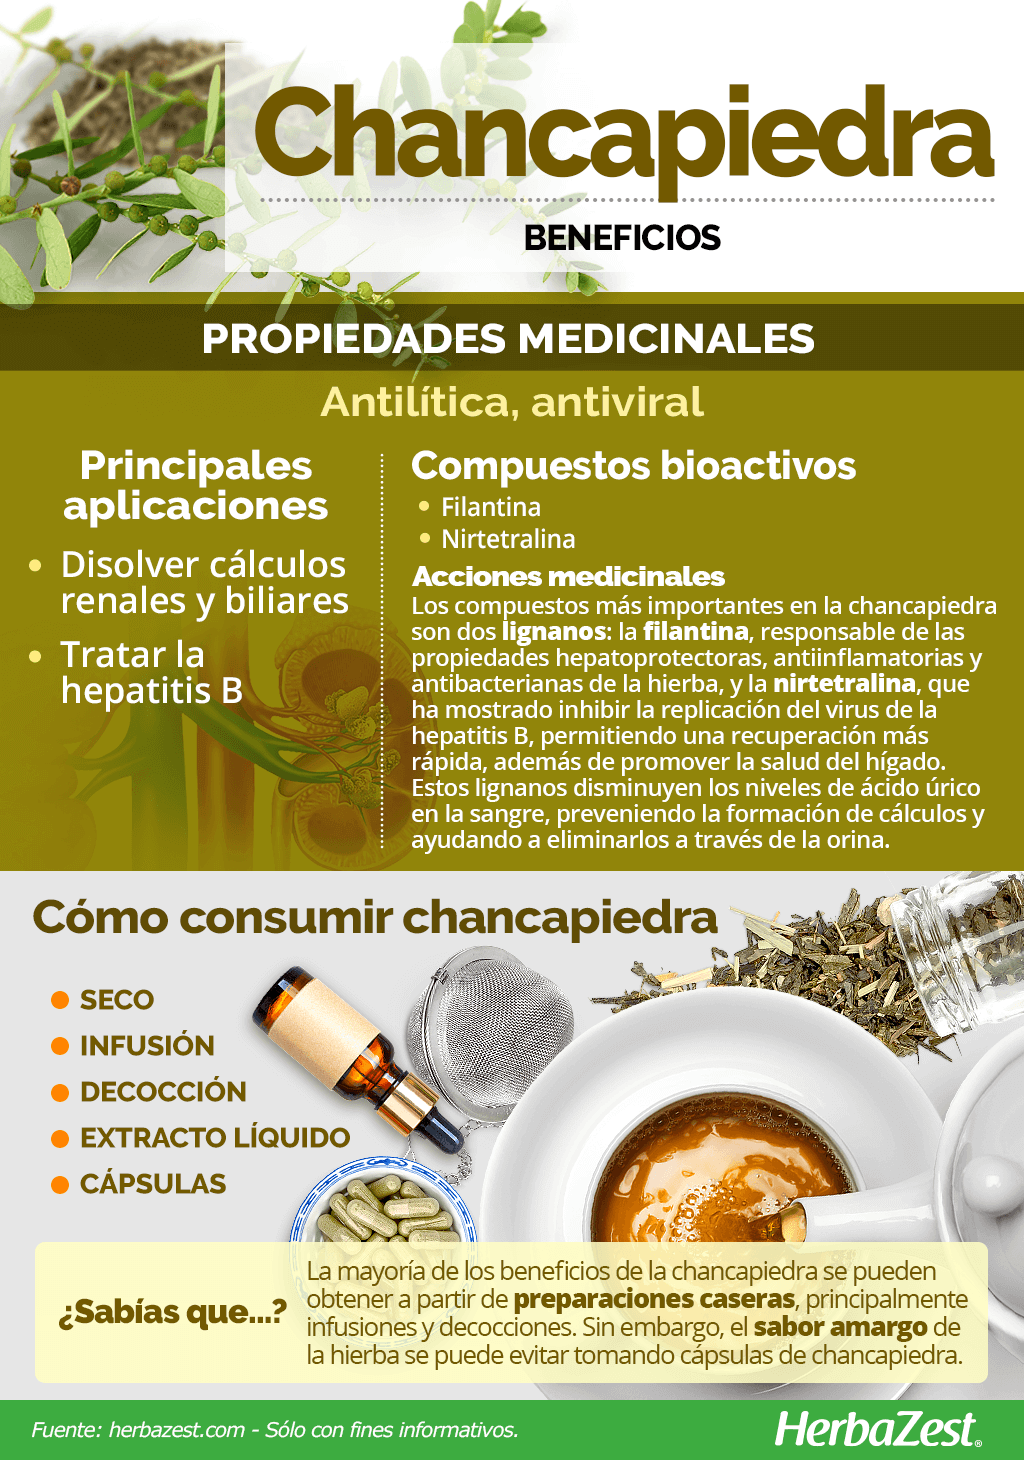 Beneficios de la chancapiedra